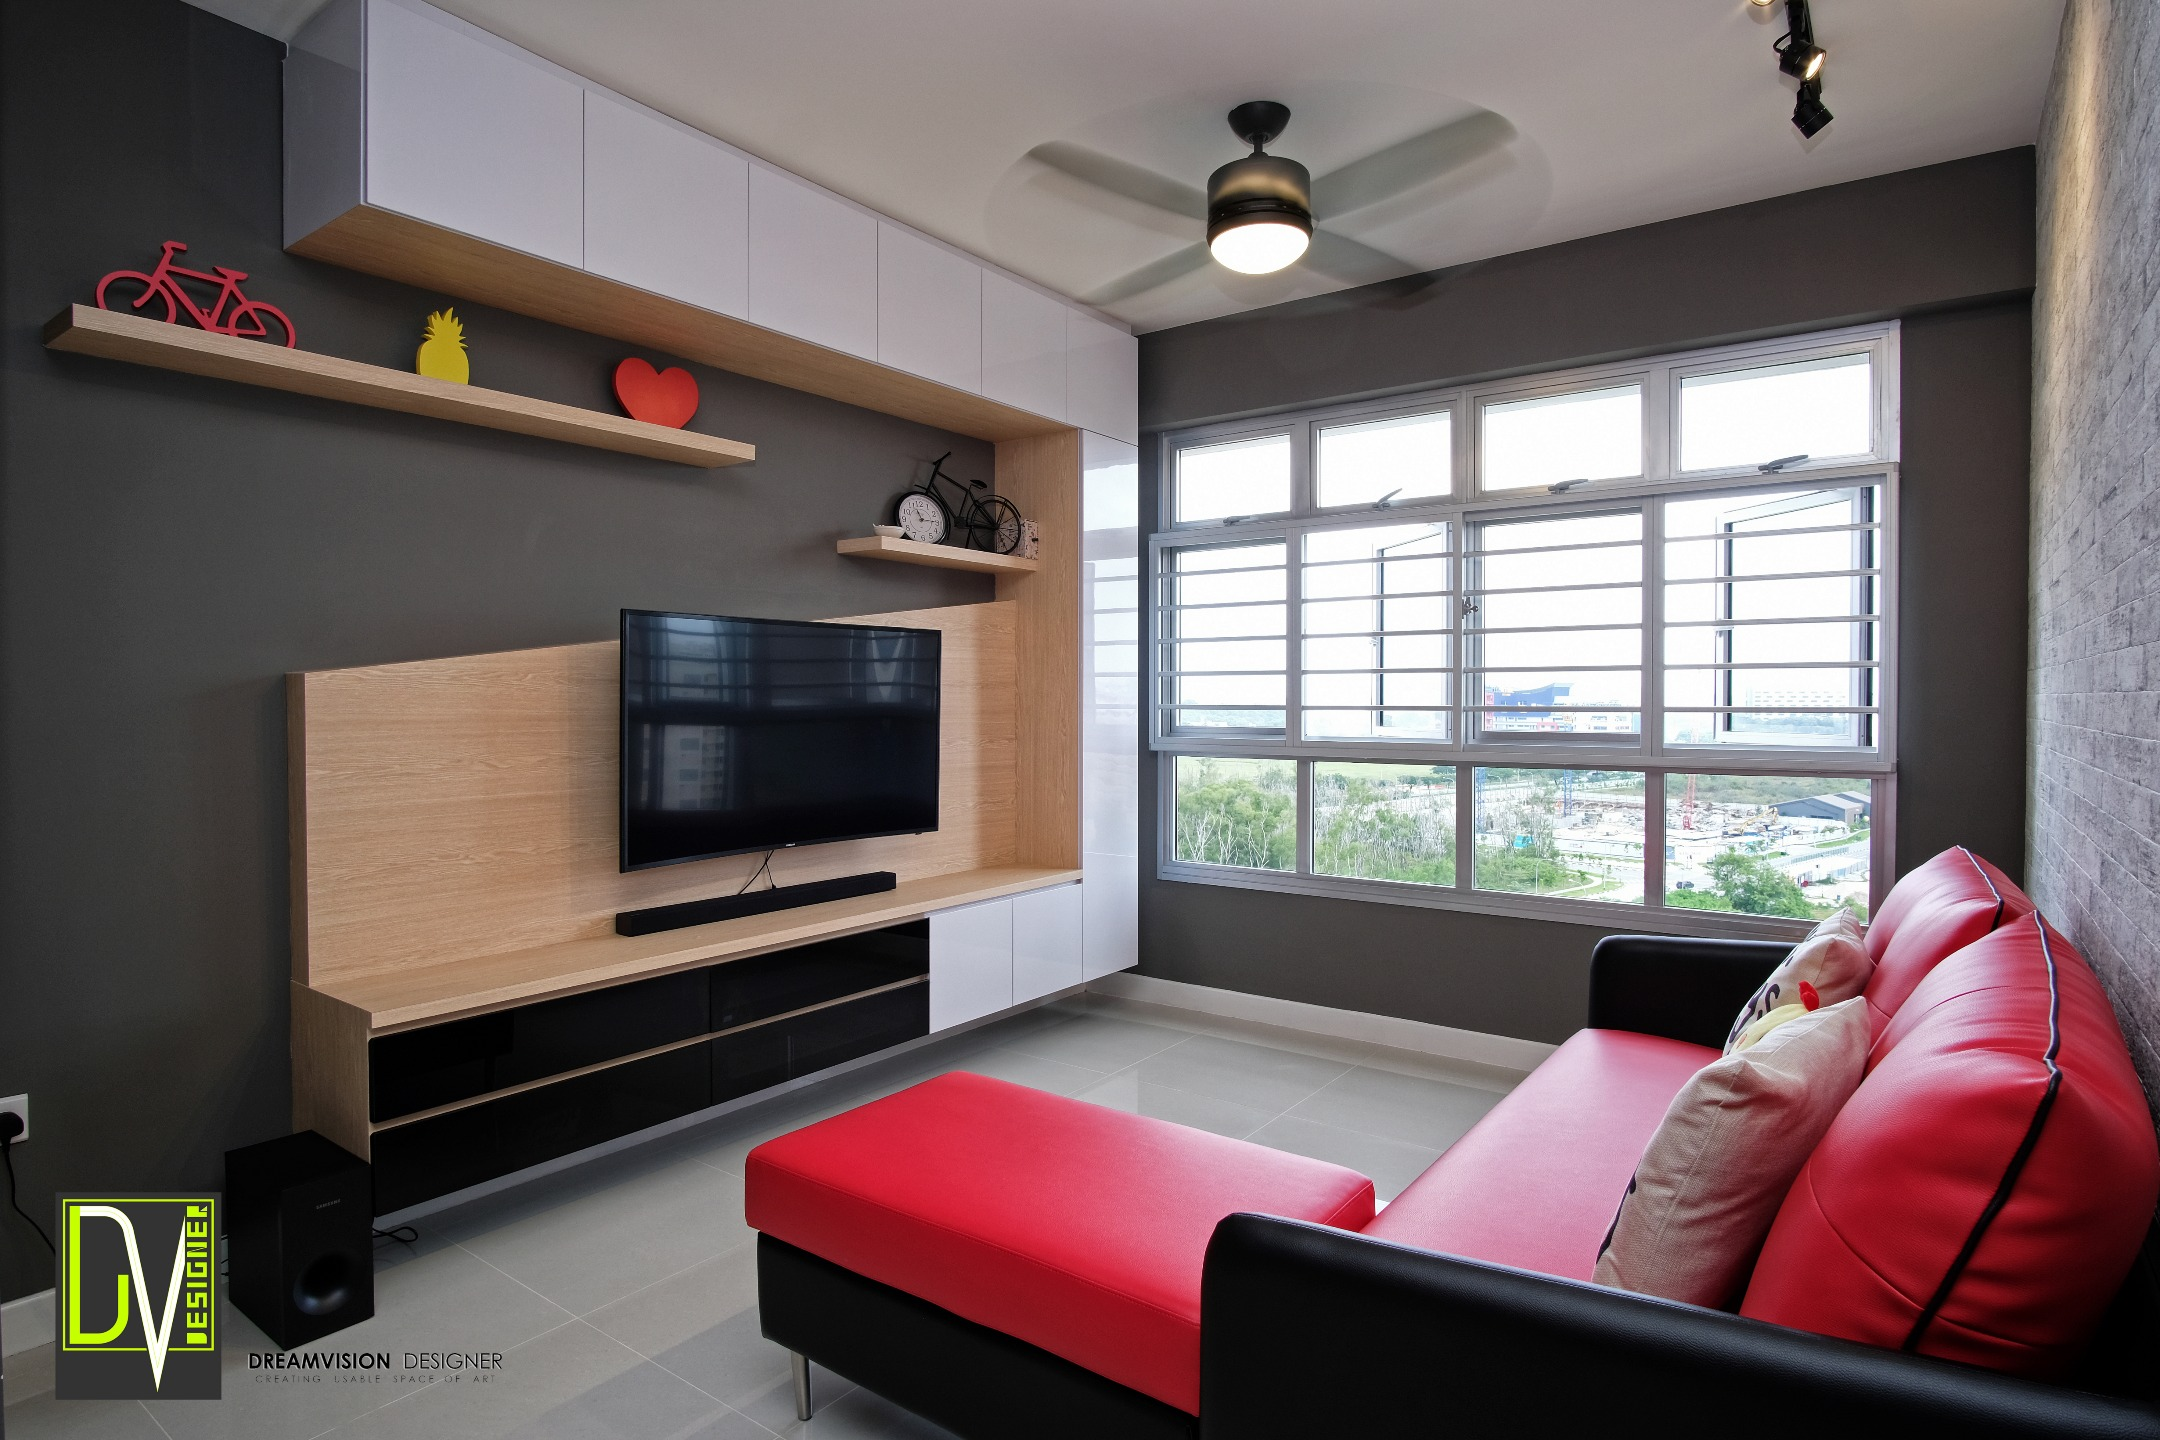 TAMPINES AVE 8